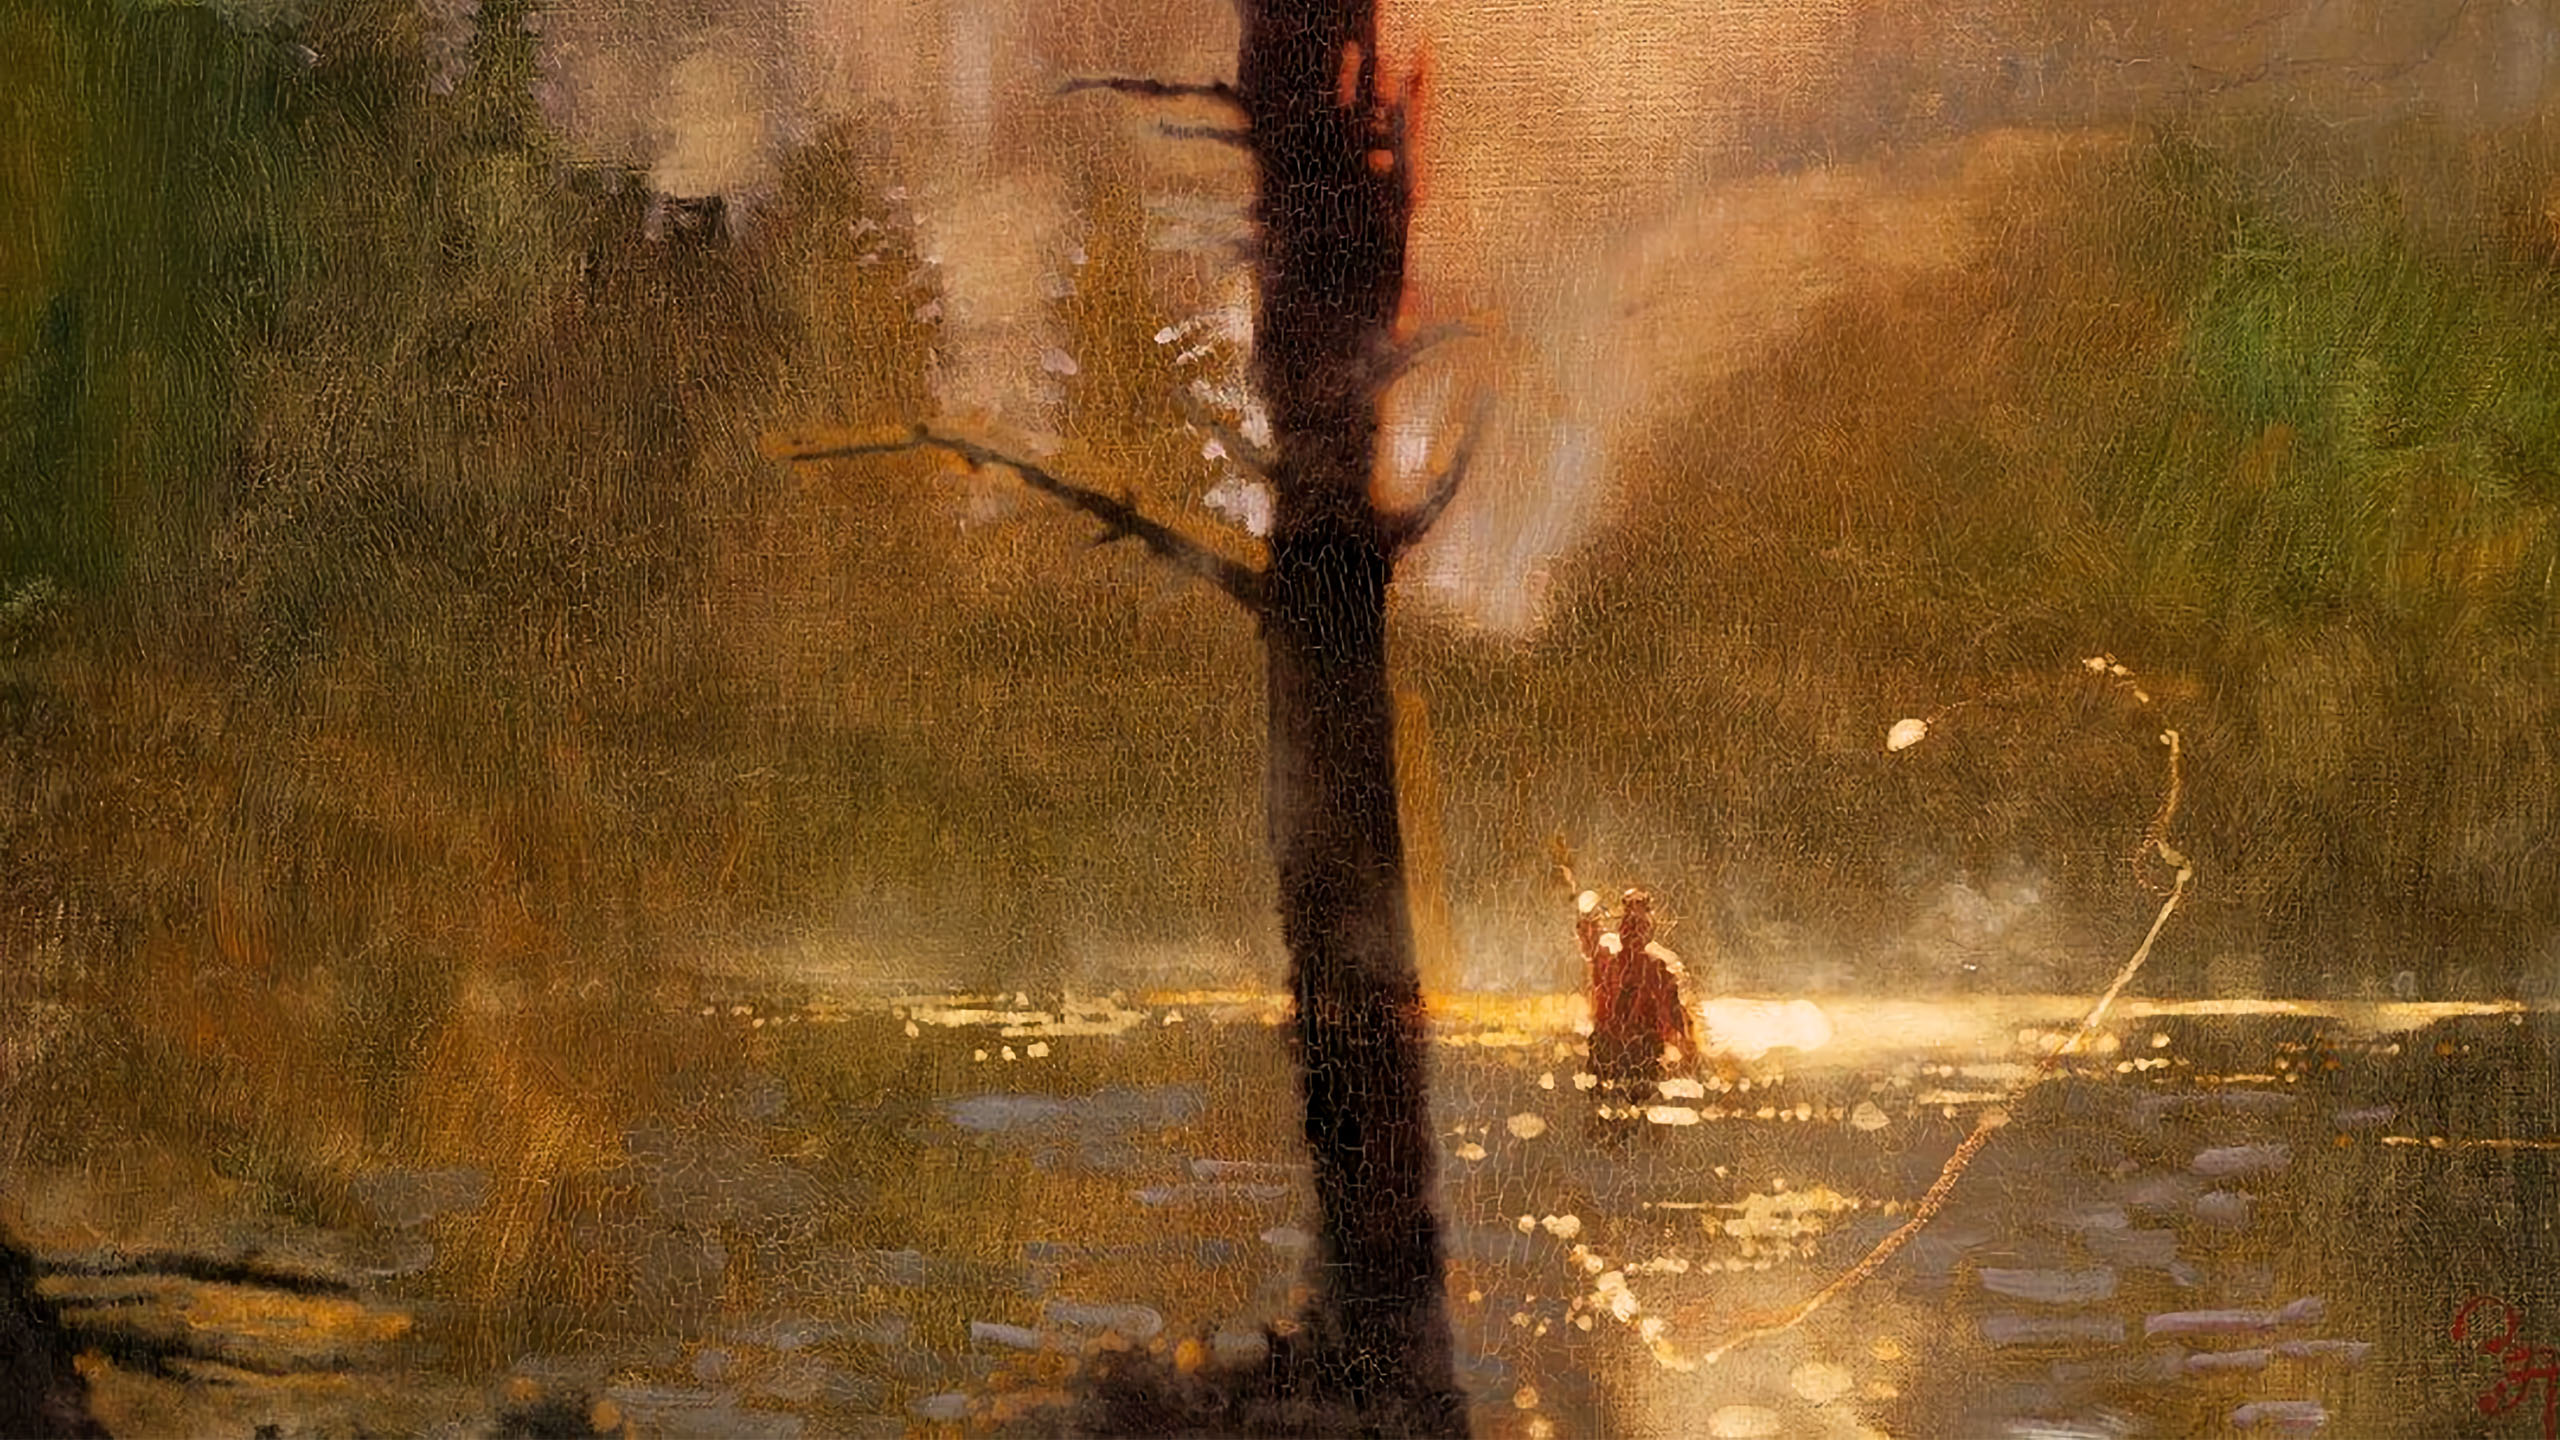 Bernie Fuchs - Fly Fishing 2560x1440